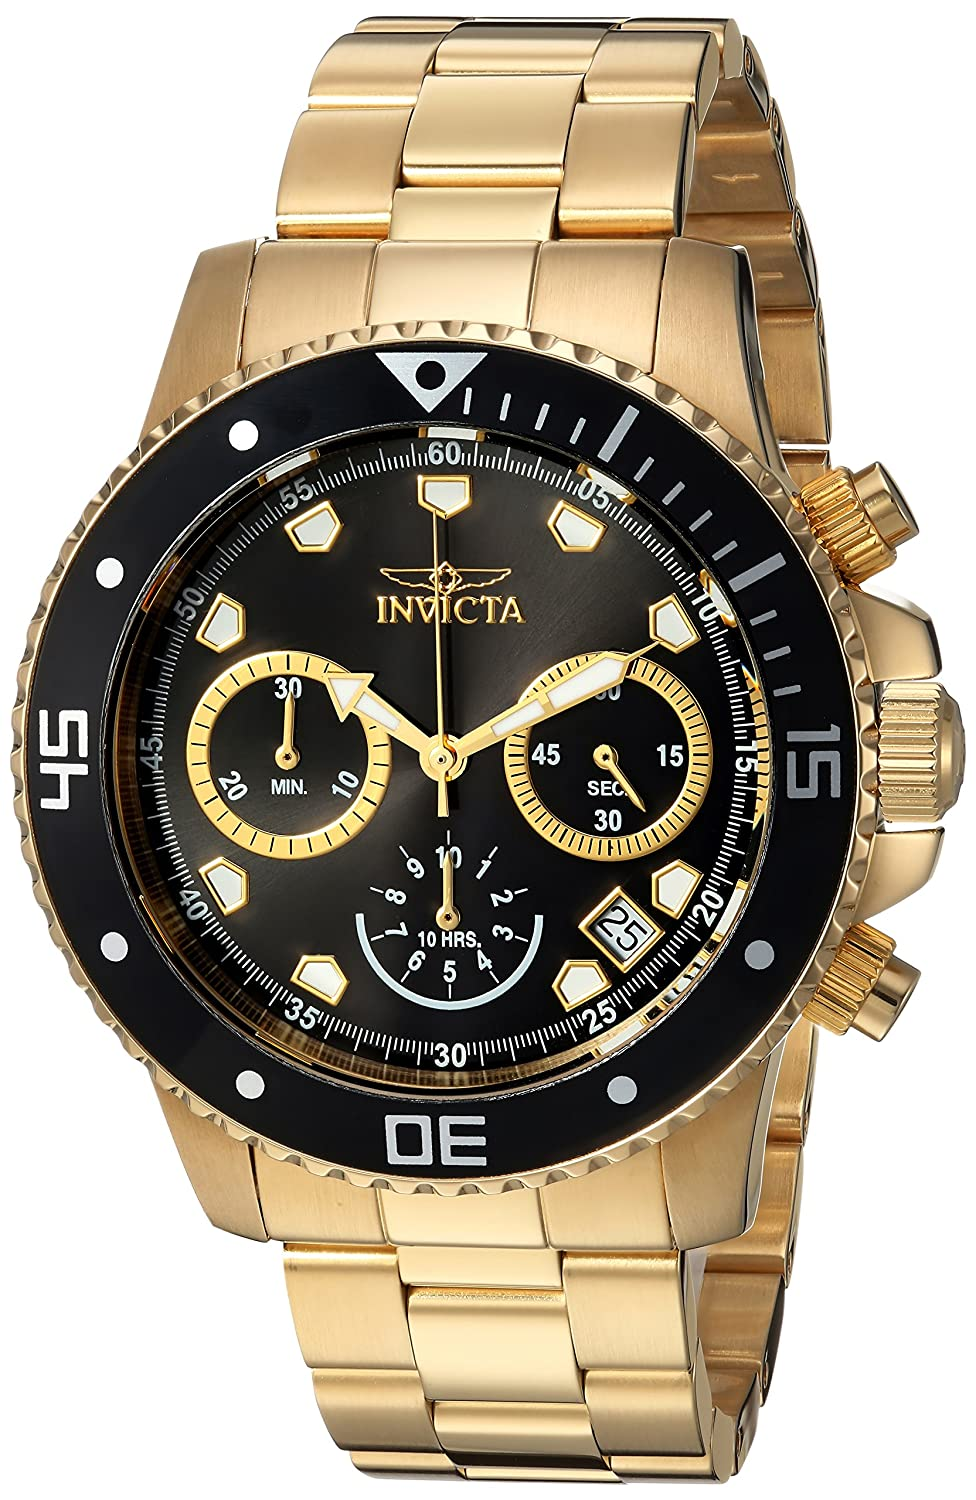 Invicta Men s Pro Diver Analog-Quartz Diving Watch with Stainless-Steel Strap, Gold, 9 Model 21893